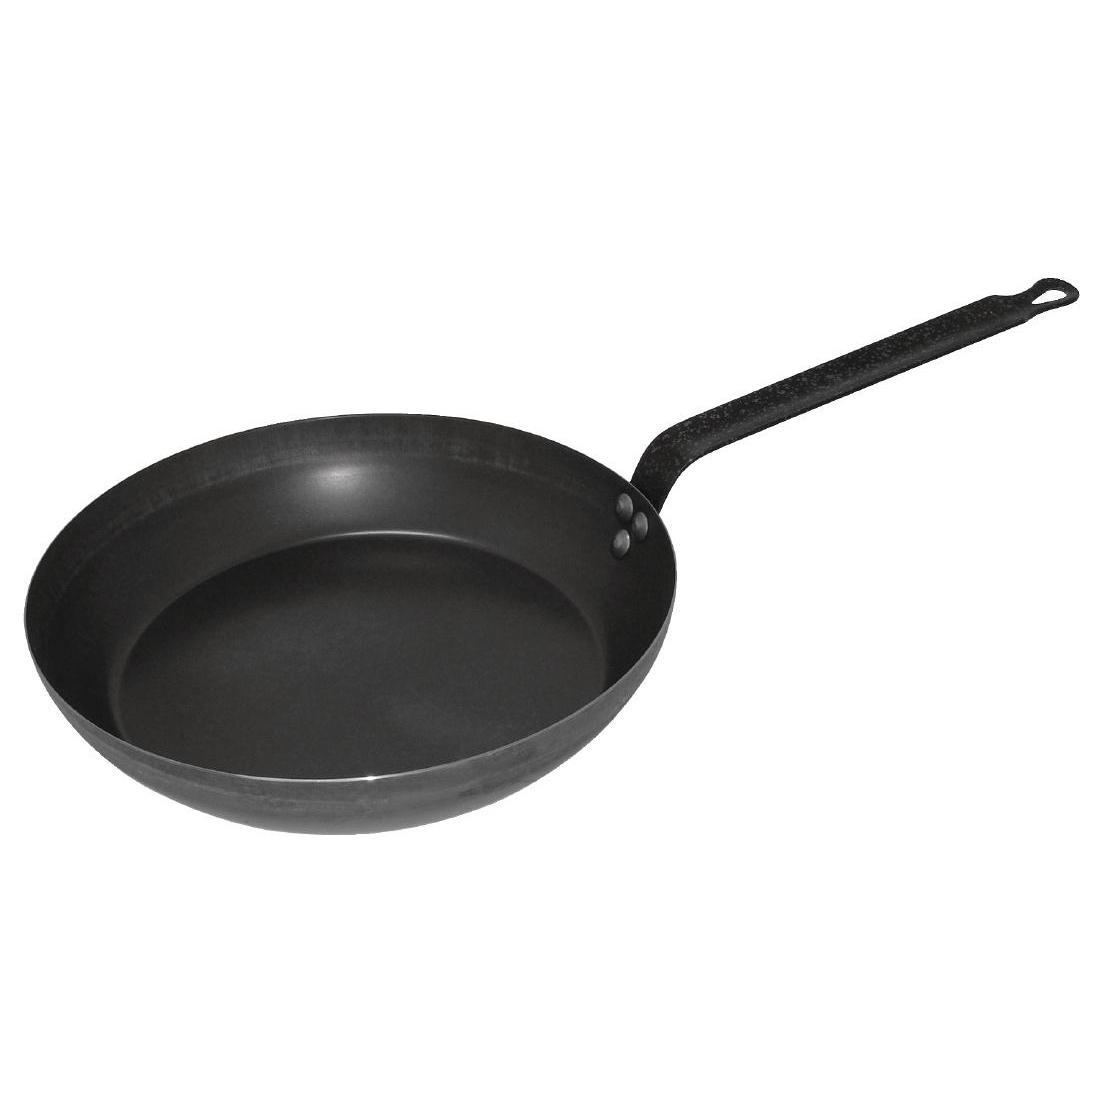 Vogue Black Iron Induction Frying Pan 305mm - Each - GD006